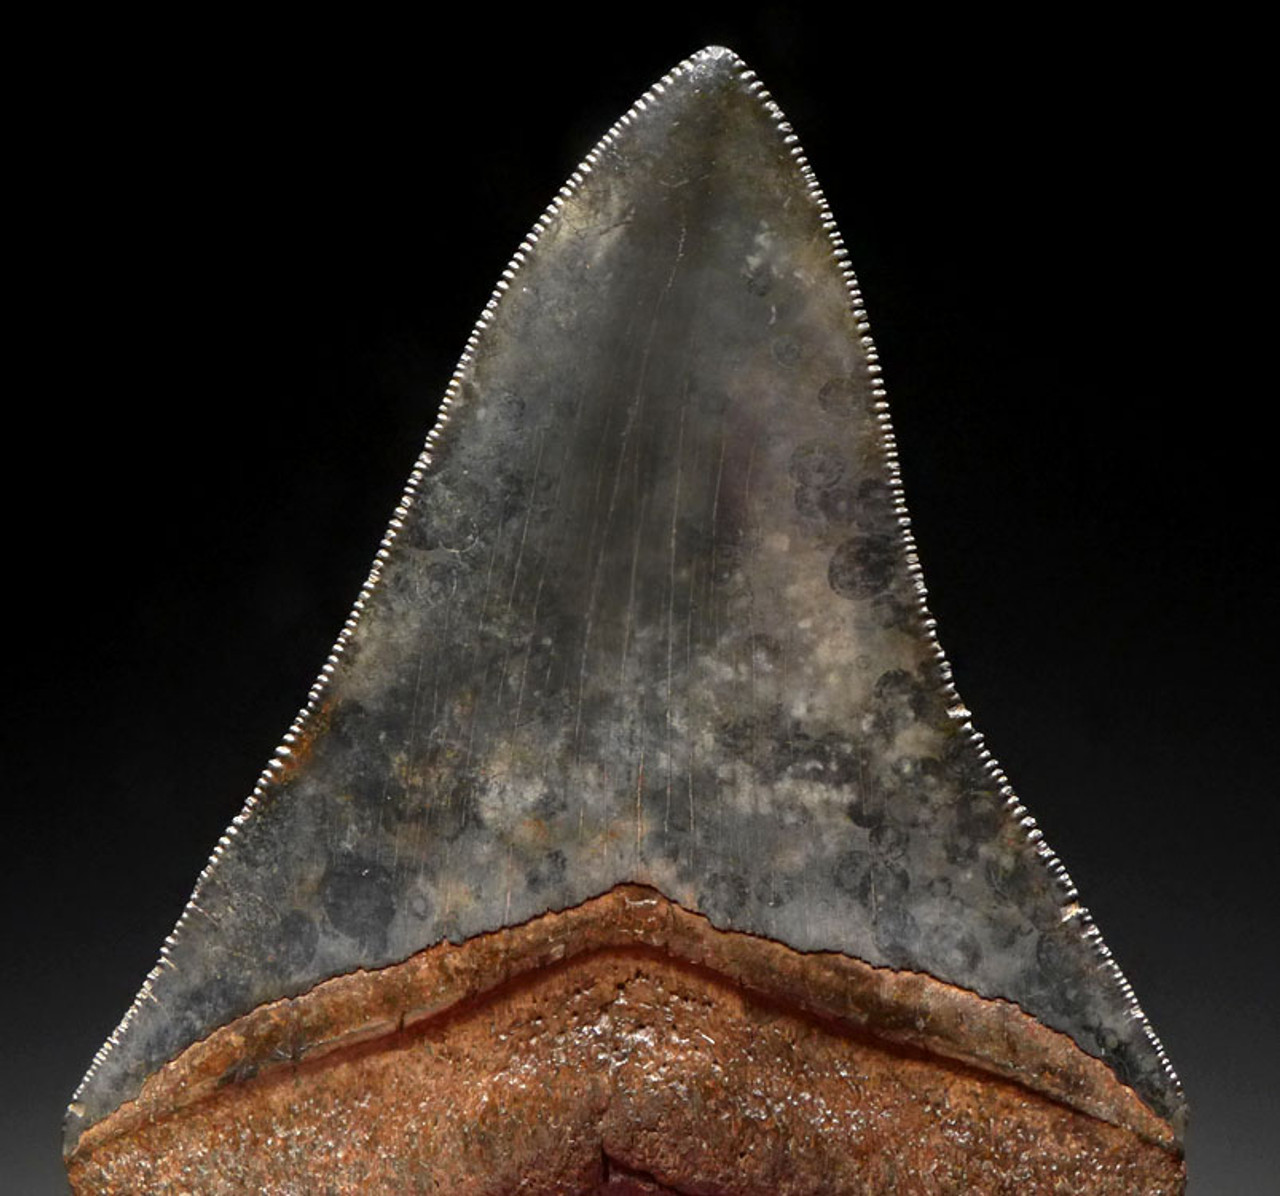 SH6-386 - COLLECTOR GRADE 4 INCH MEGALODON SHARK TOOTH WITH RARE SPOTTED AND MARBLED BLUE GRAY ENAMEL